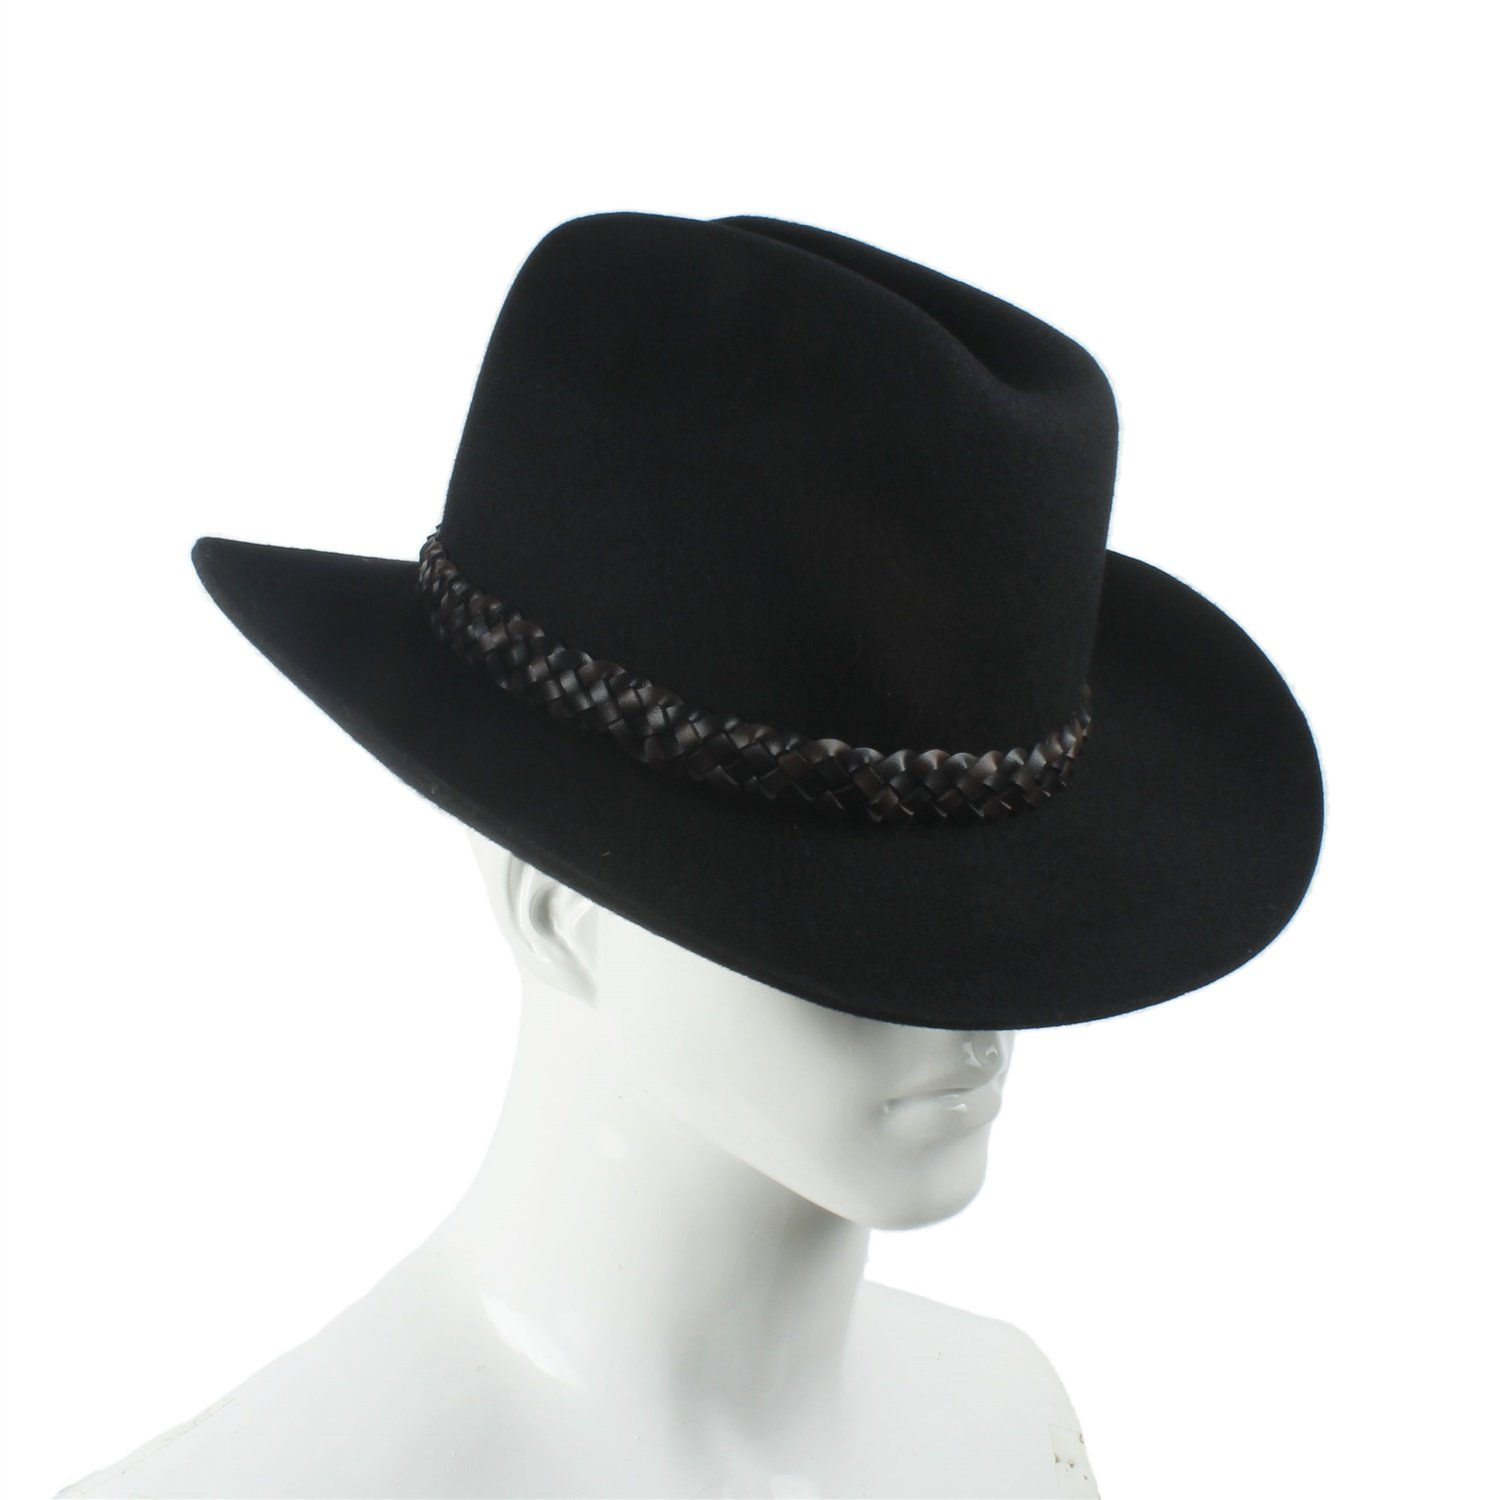 3e9089695765f LL Women's Black Cowboy Hat 100% Wool Felt Women's Small Cassidy Crown  Country Western Wear Outback Style (Color : Black, Size : 57-58CM)